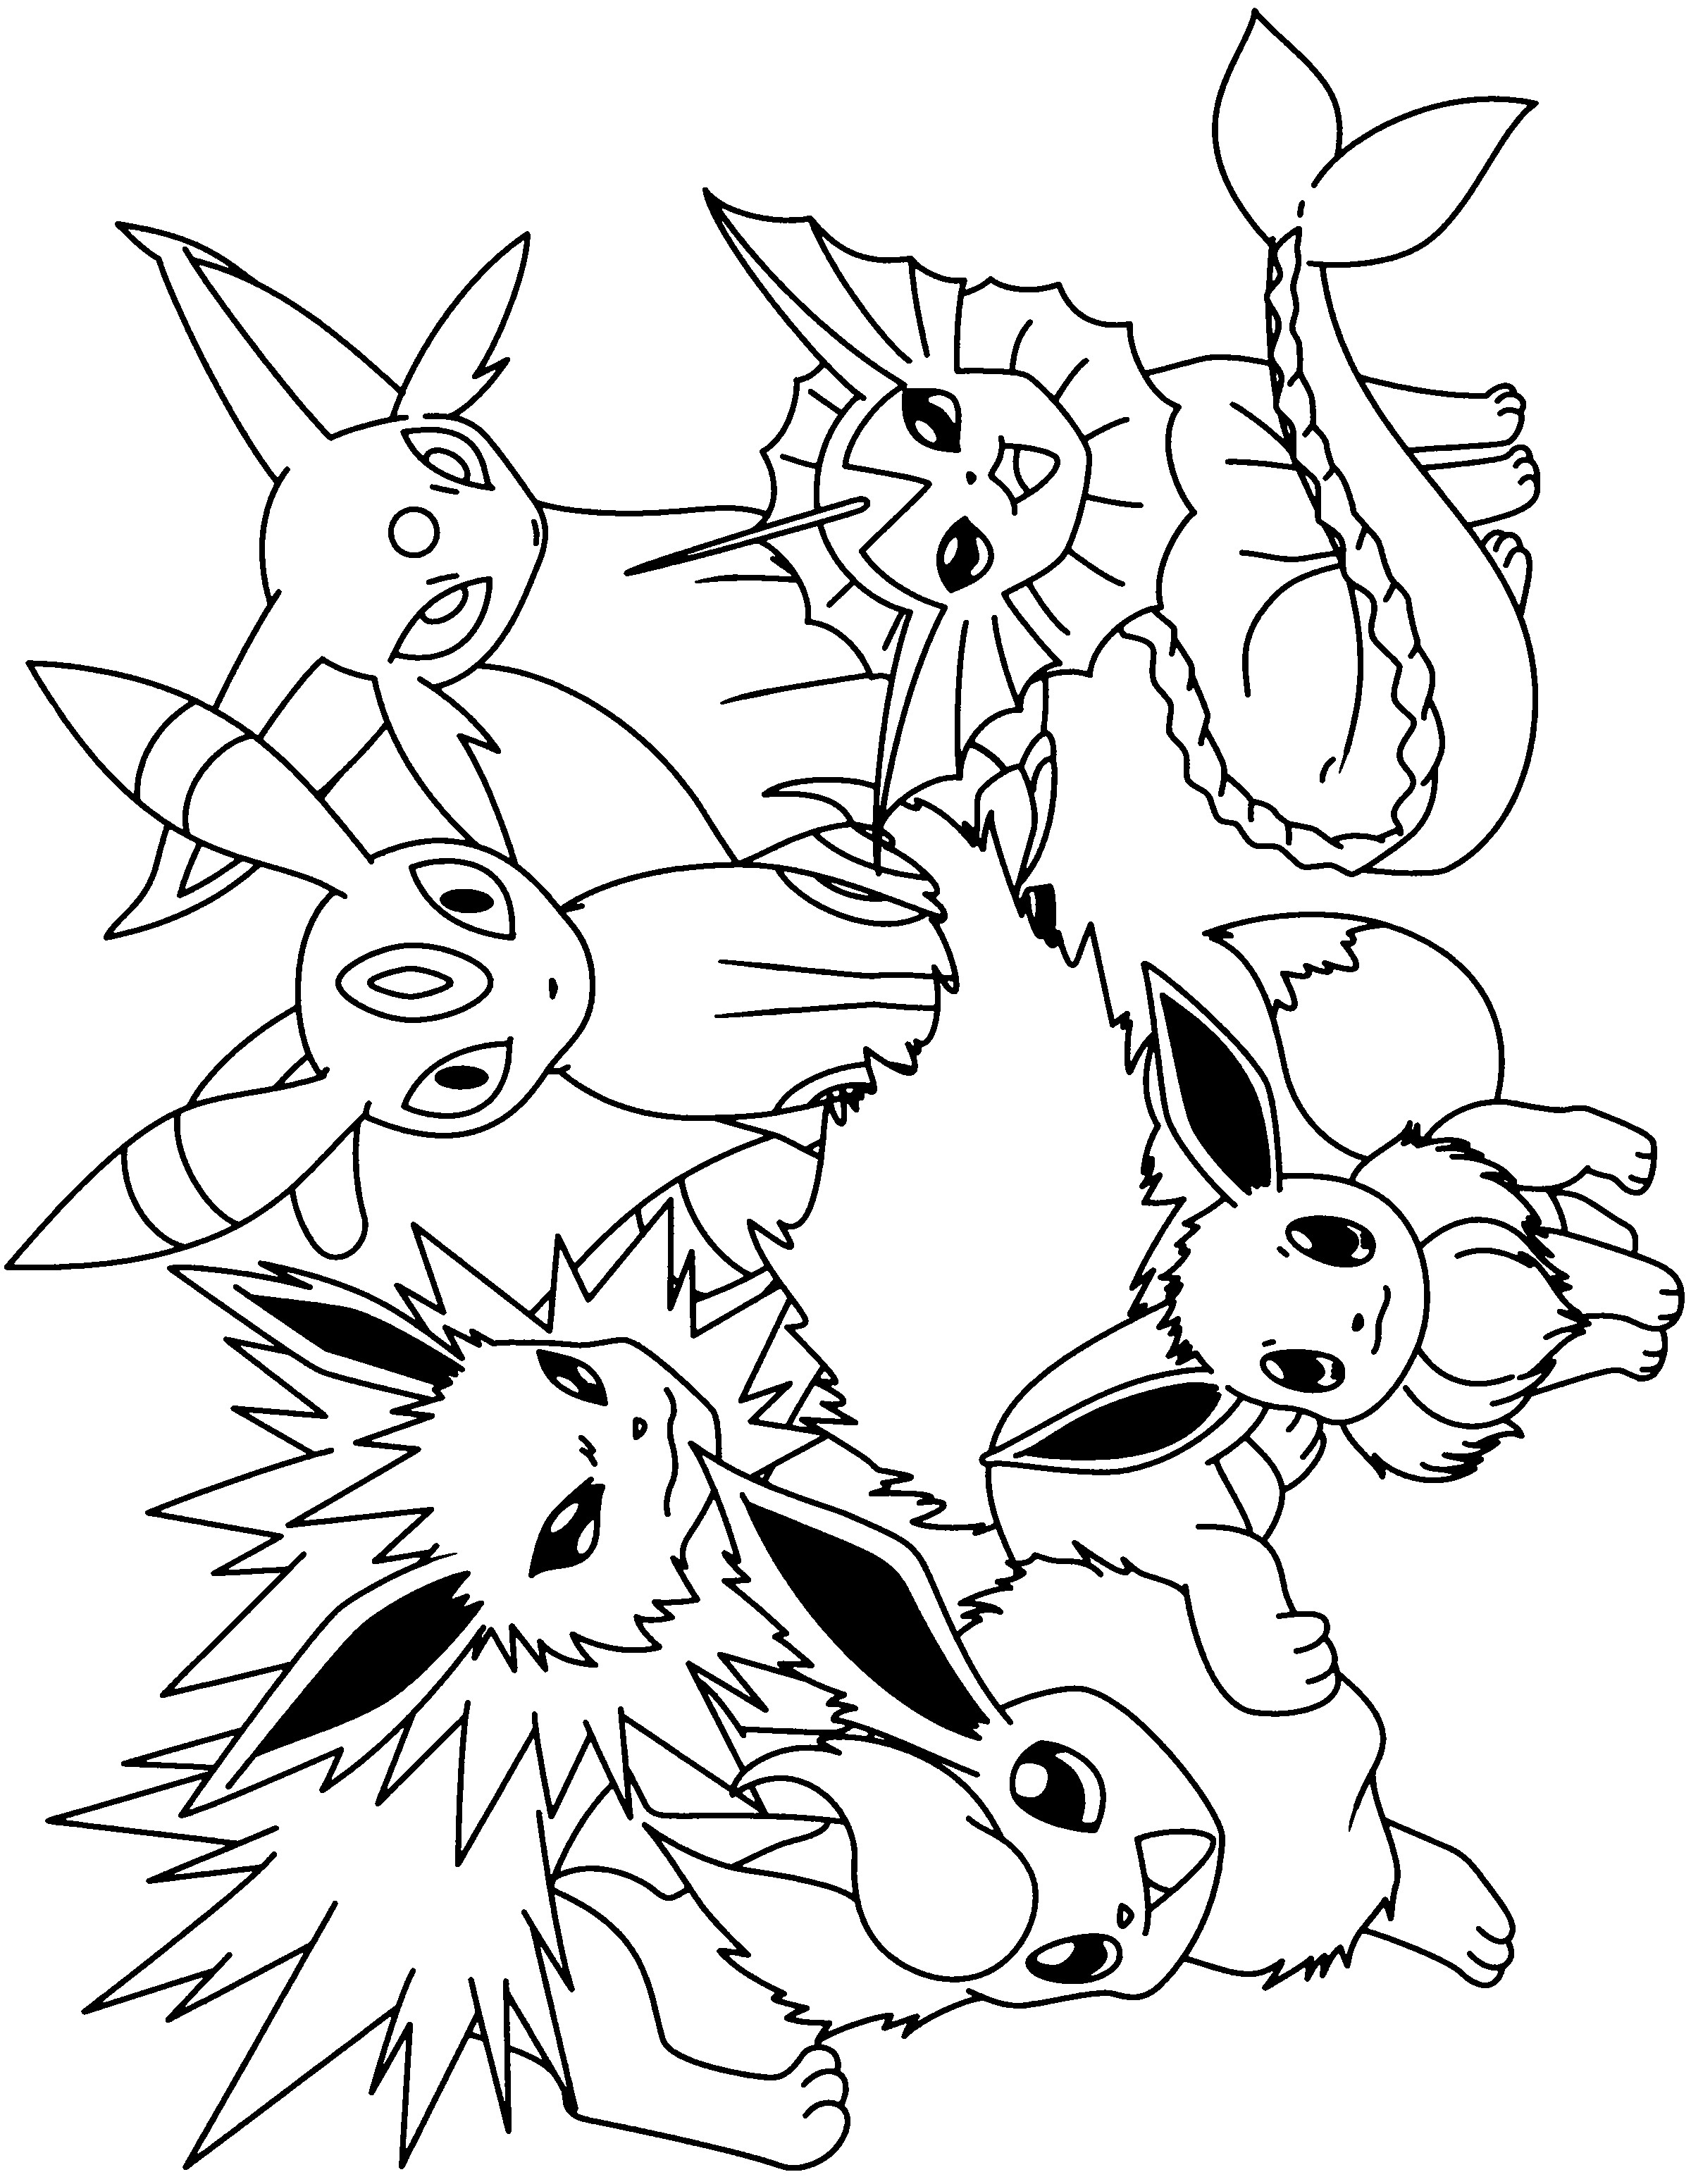 pokemon eevee evolutions coloring pages pokemon coloring pages eevee evolutions part 3 free pokemon evolutions coloring pages eevee